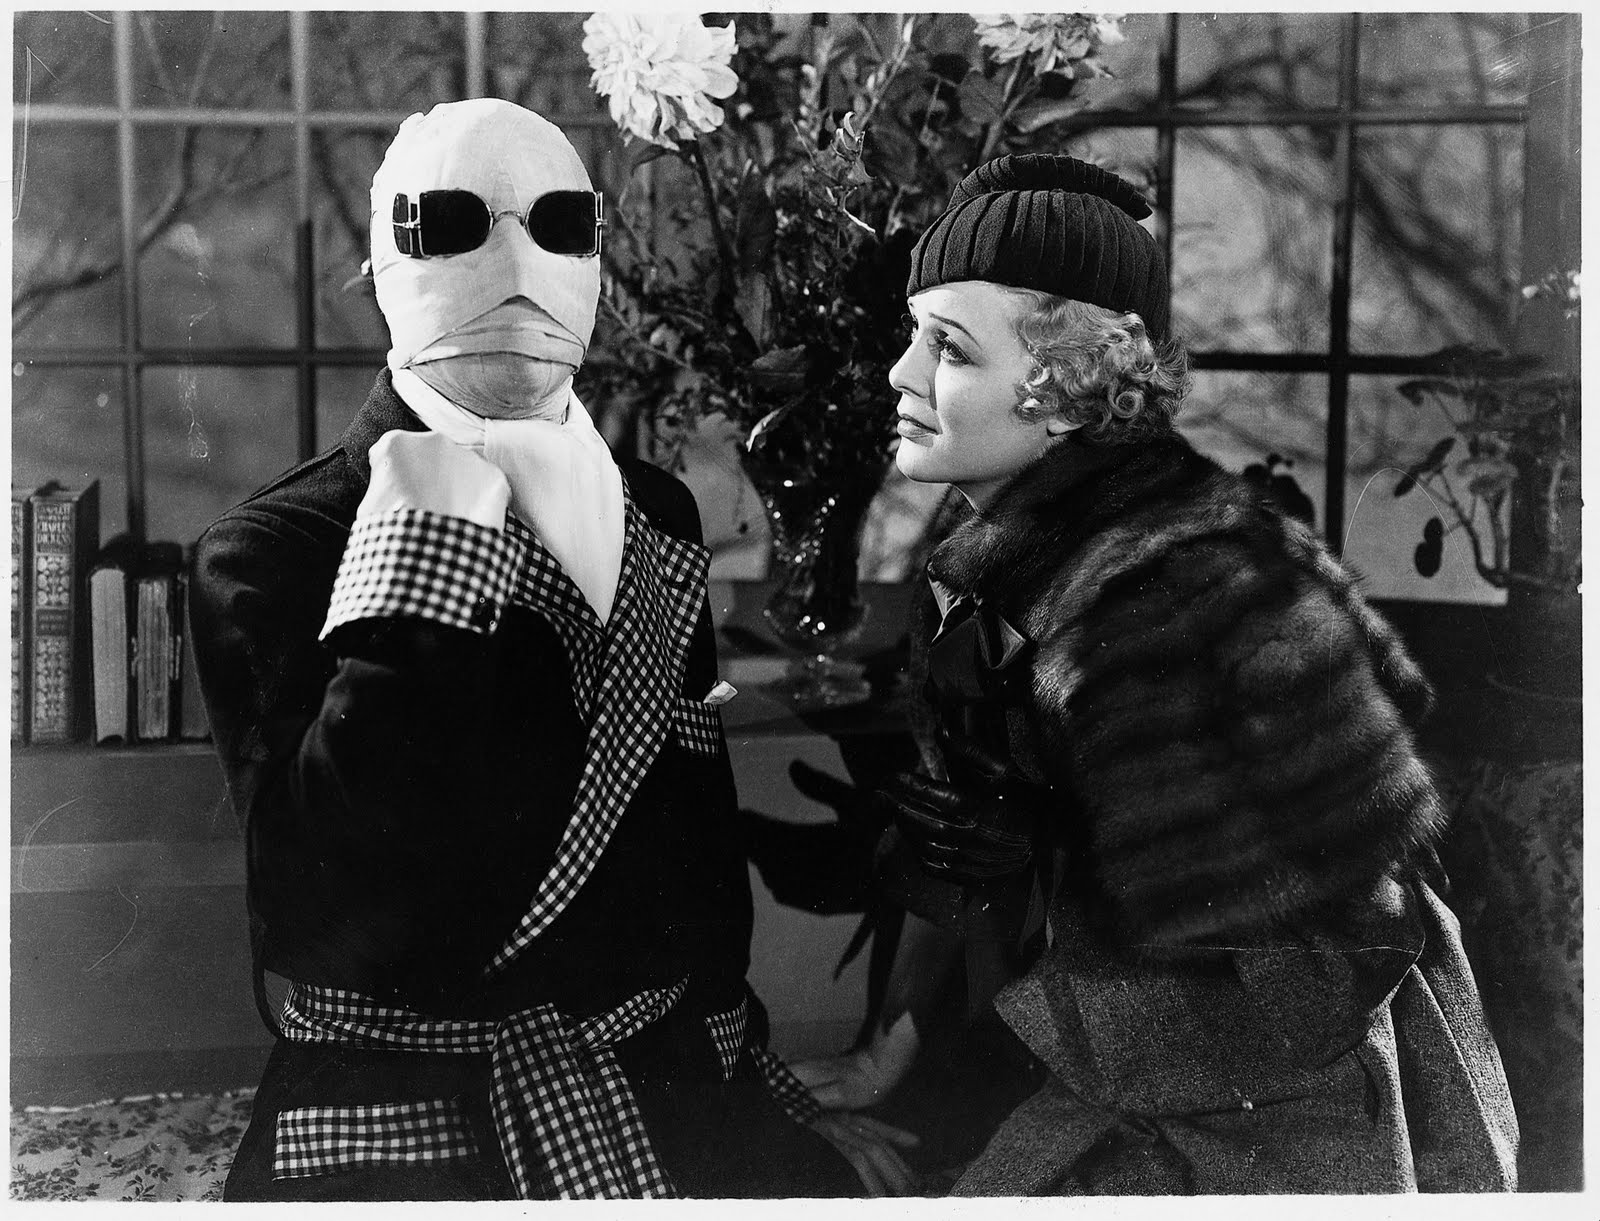 Syfy  November  In Scifi History The Invisible Man  November  Syfy  November  In Scifi History The Invisible Man  November  In  Scifi History The Invisible Man  Syfy Wire Essay Good Health also Modest Proposal Essay  Help W/ Assignments